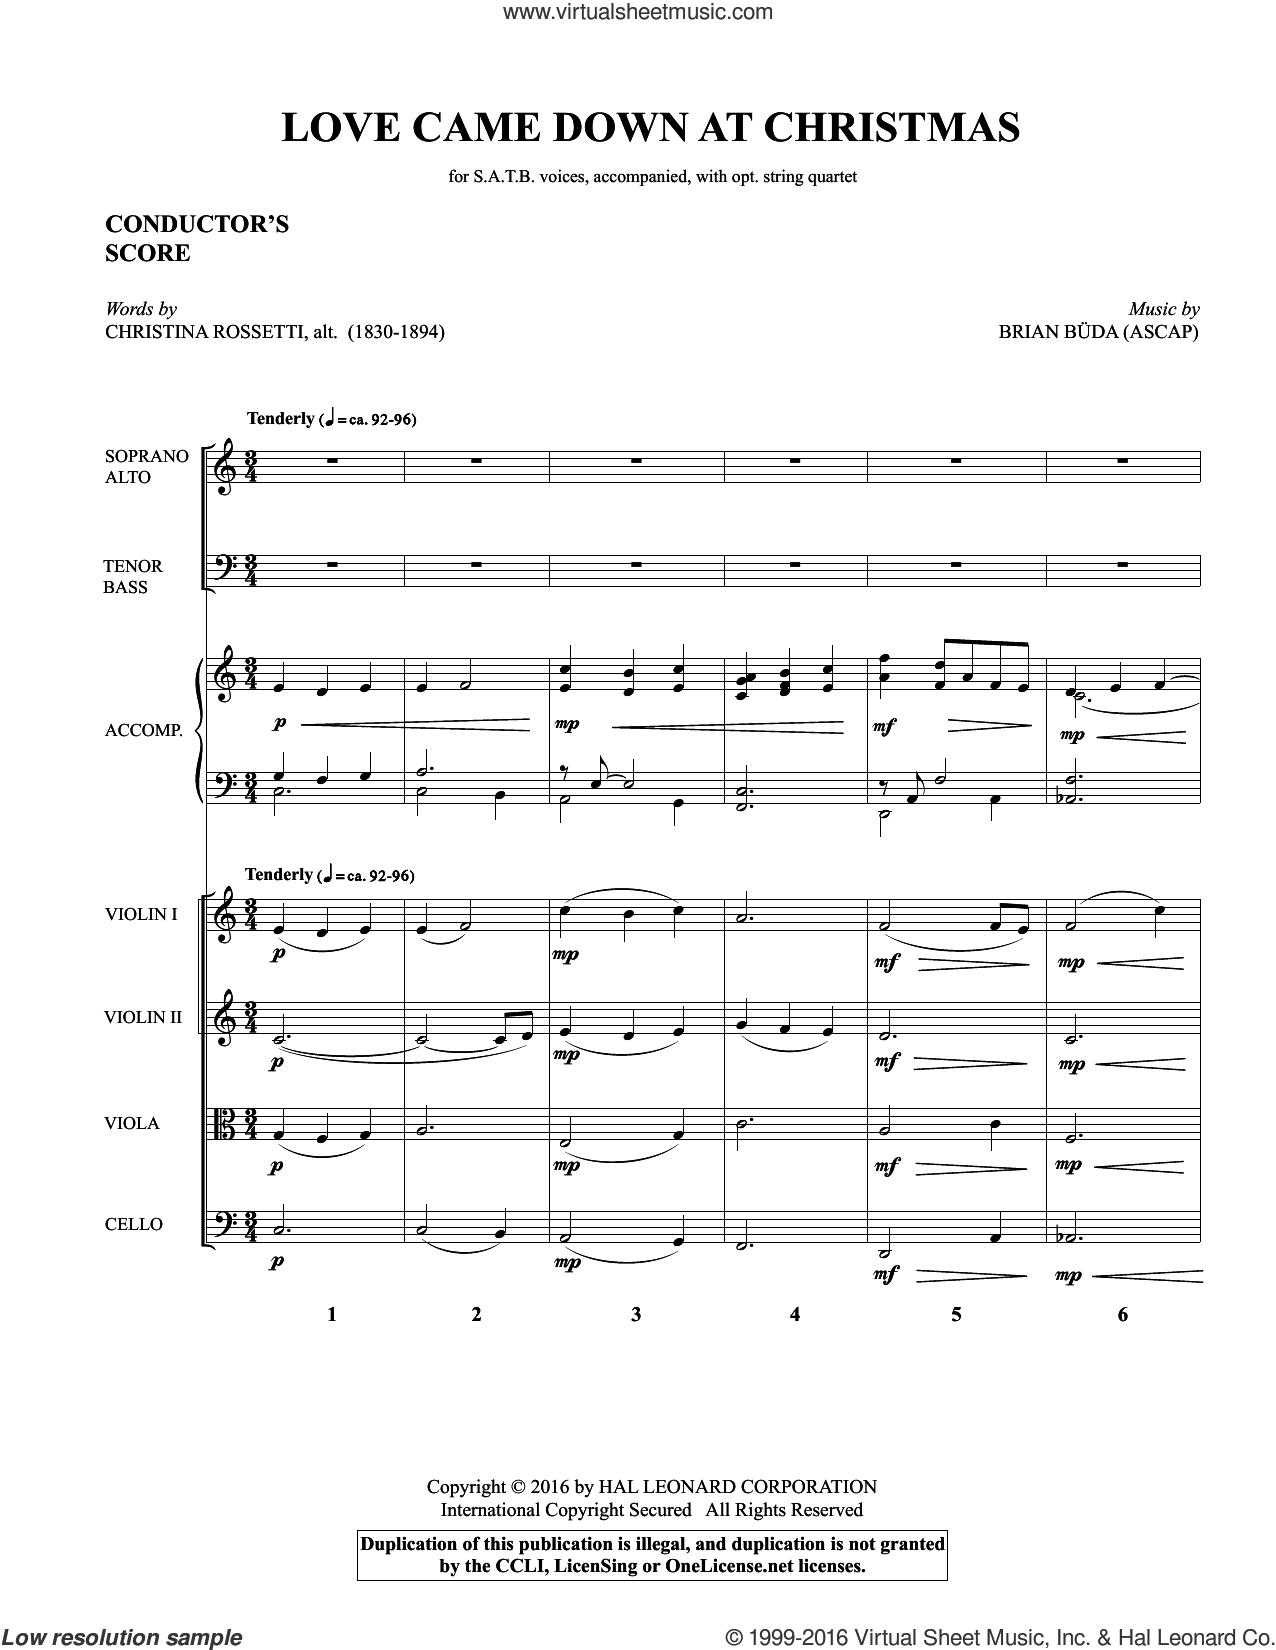 Love Came Down at Christmas (COMPLETE) sheet music for orchestra by Brian Buda and Christina Rossetti. Score Image Preview.